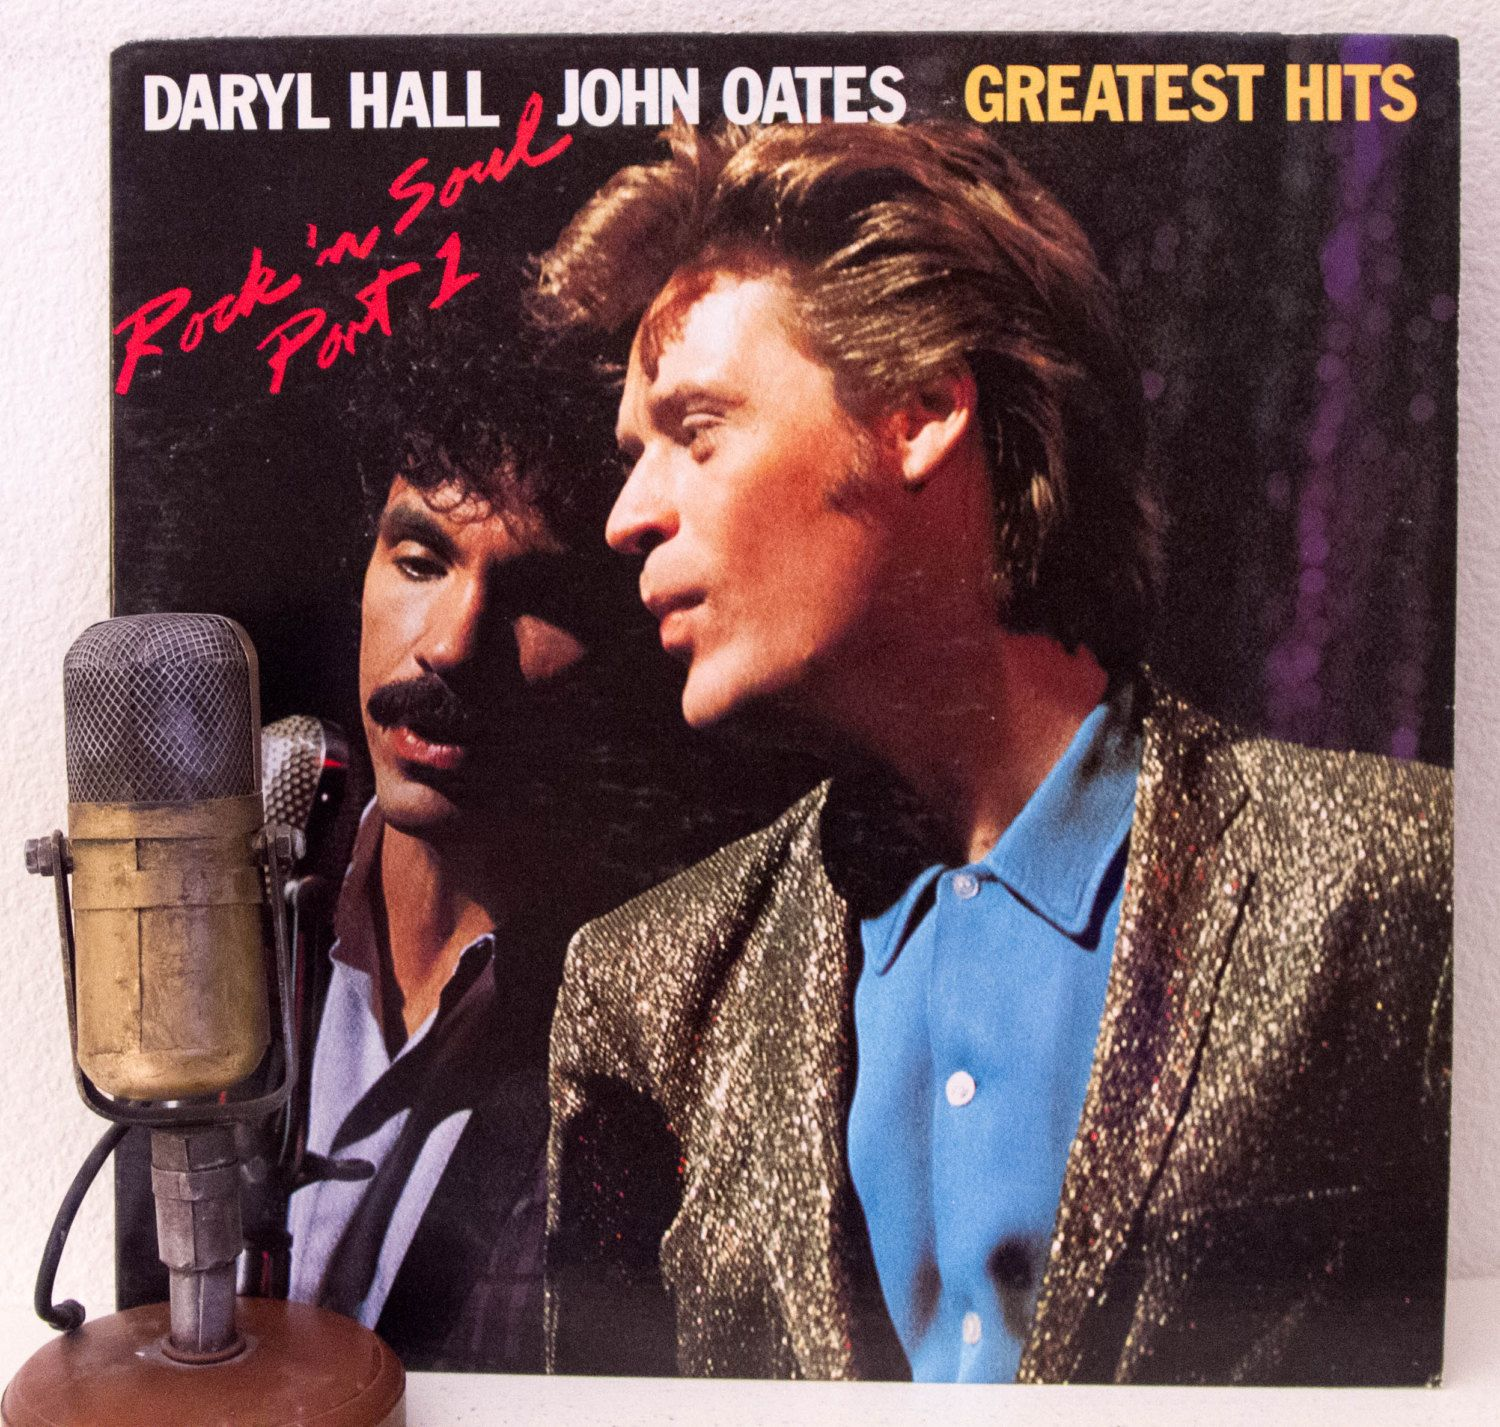 Hall and oates rock n soul part 1 vintage vinyl record